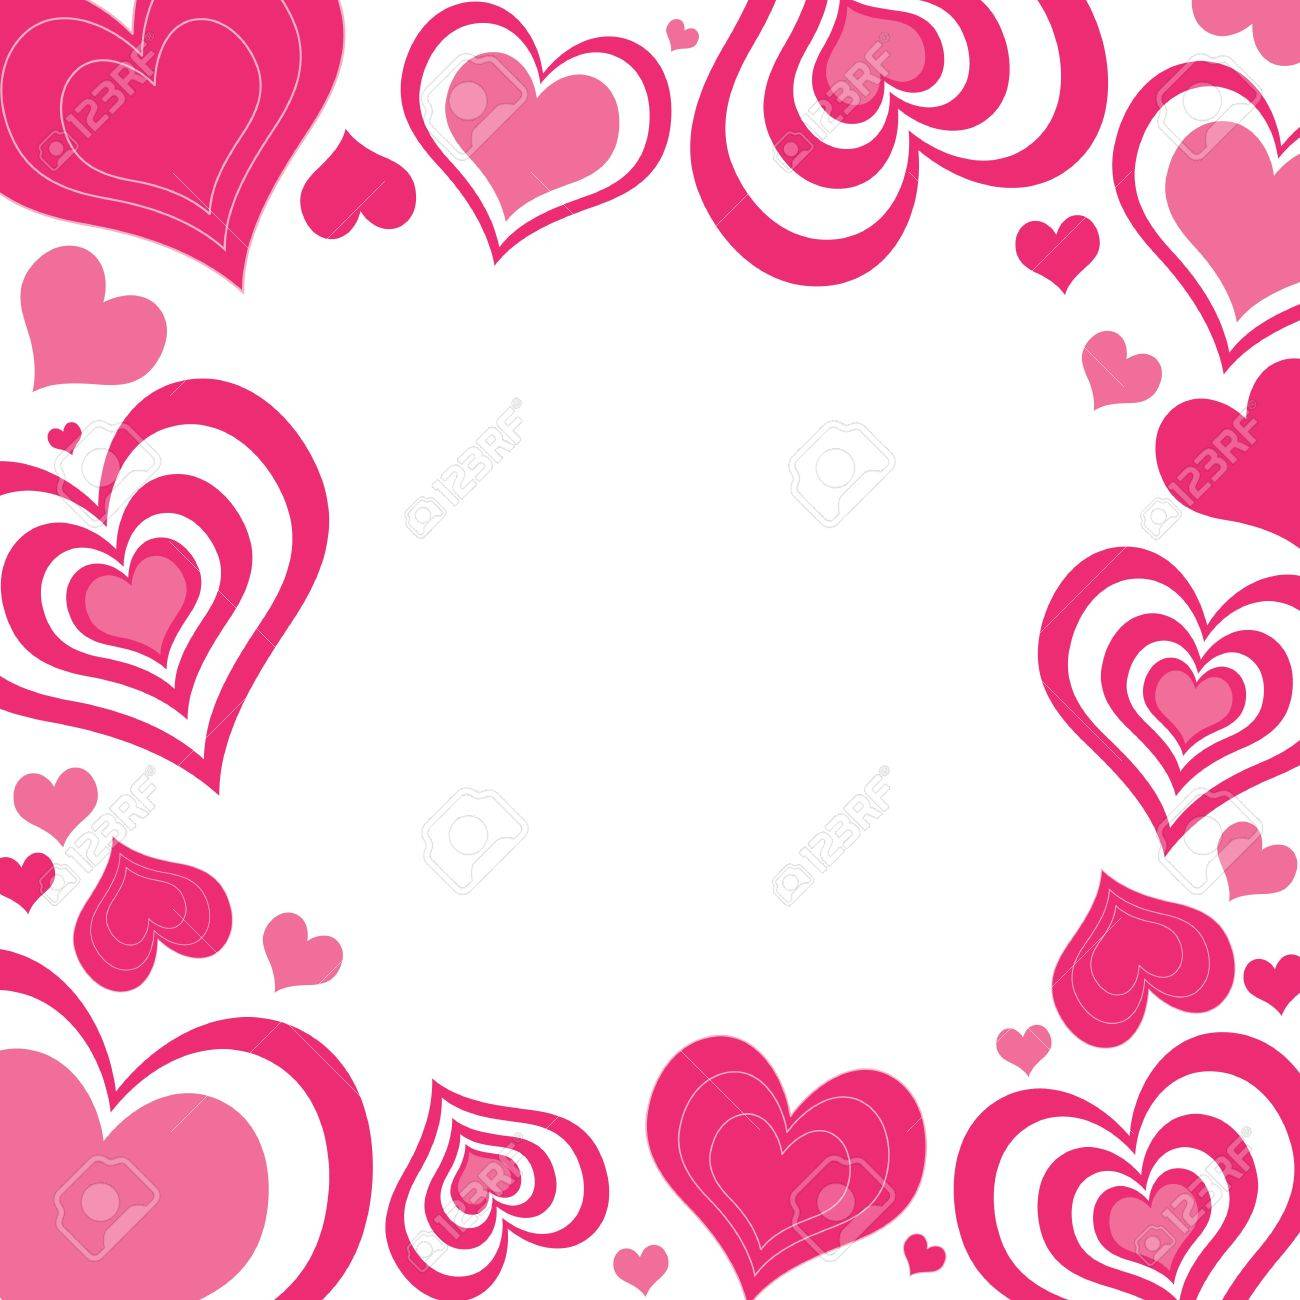 an illustration of valentine hearts border in shades of pink stock